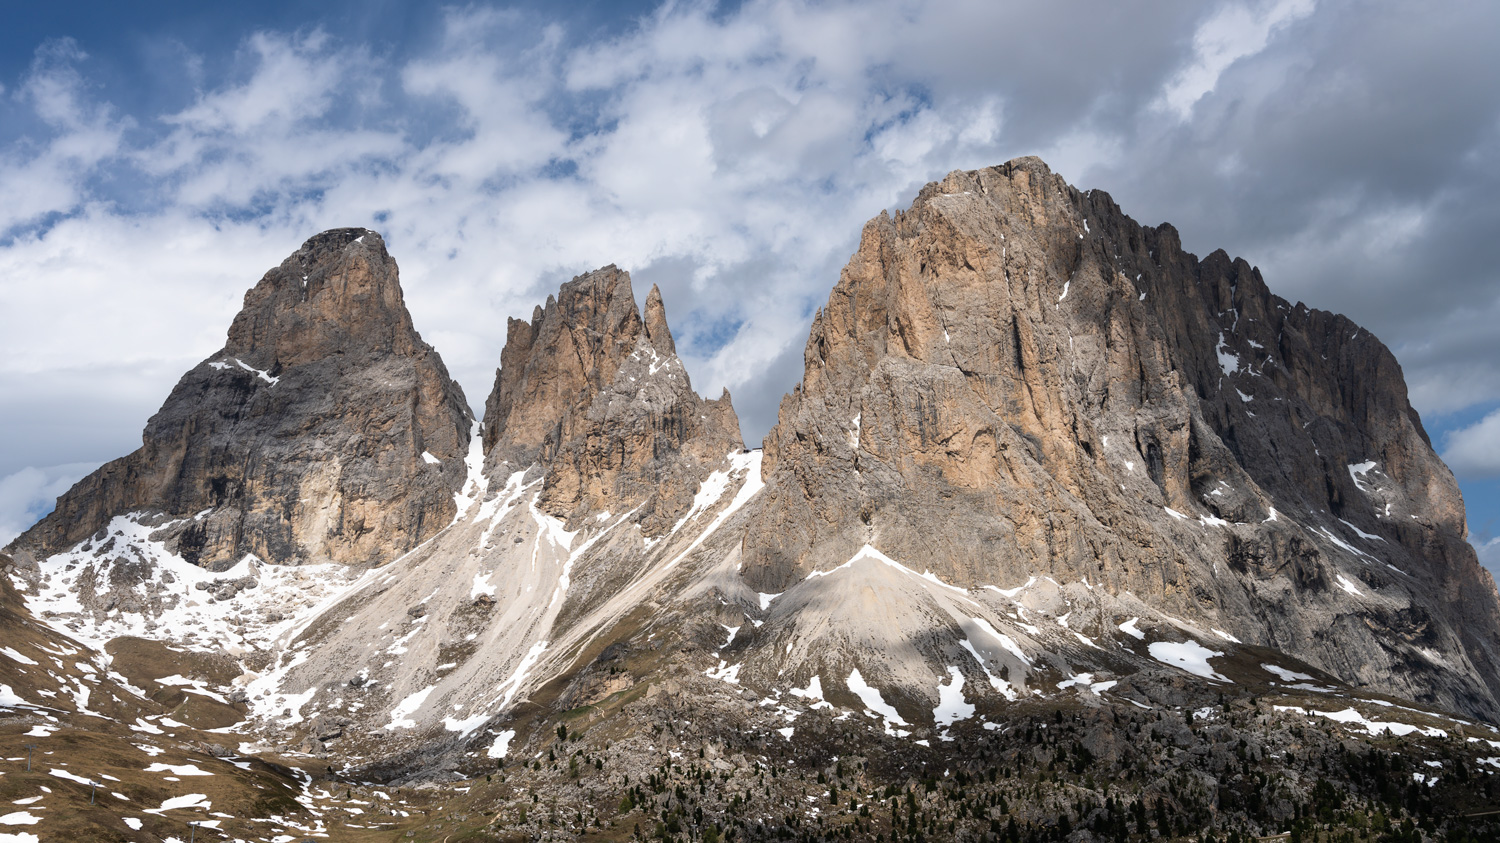 Sasso Piatto, Cinque Ditta & Sassolungo from the Sella Pass